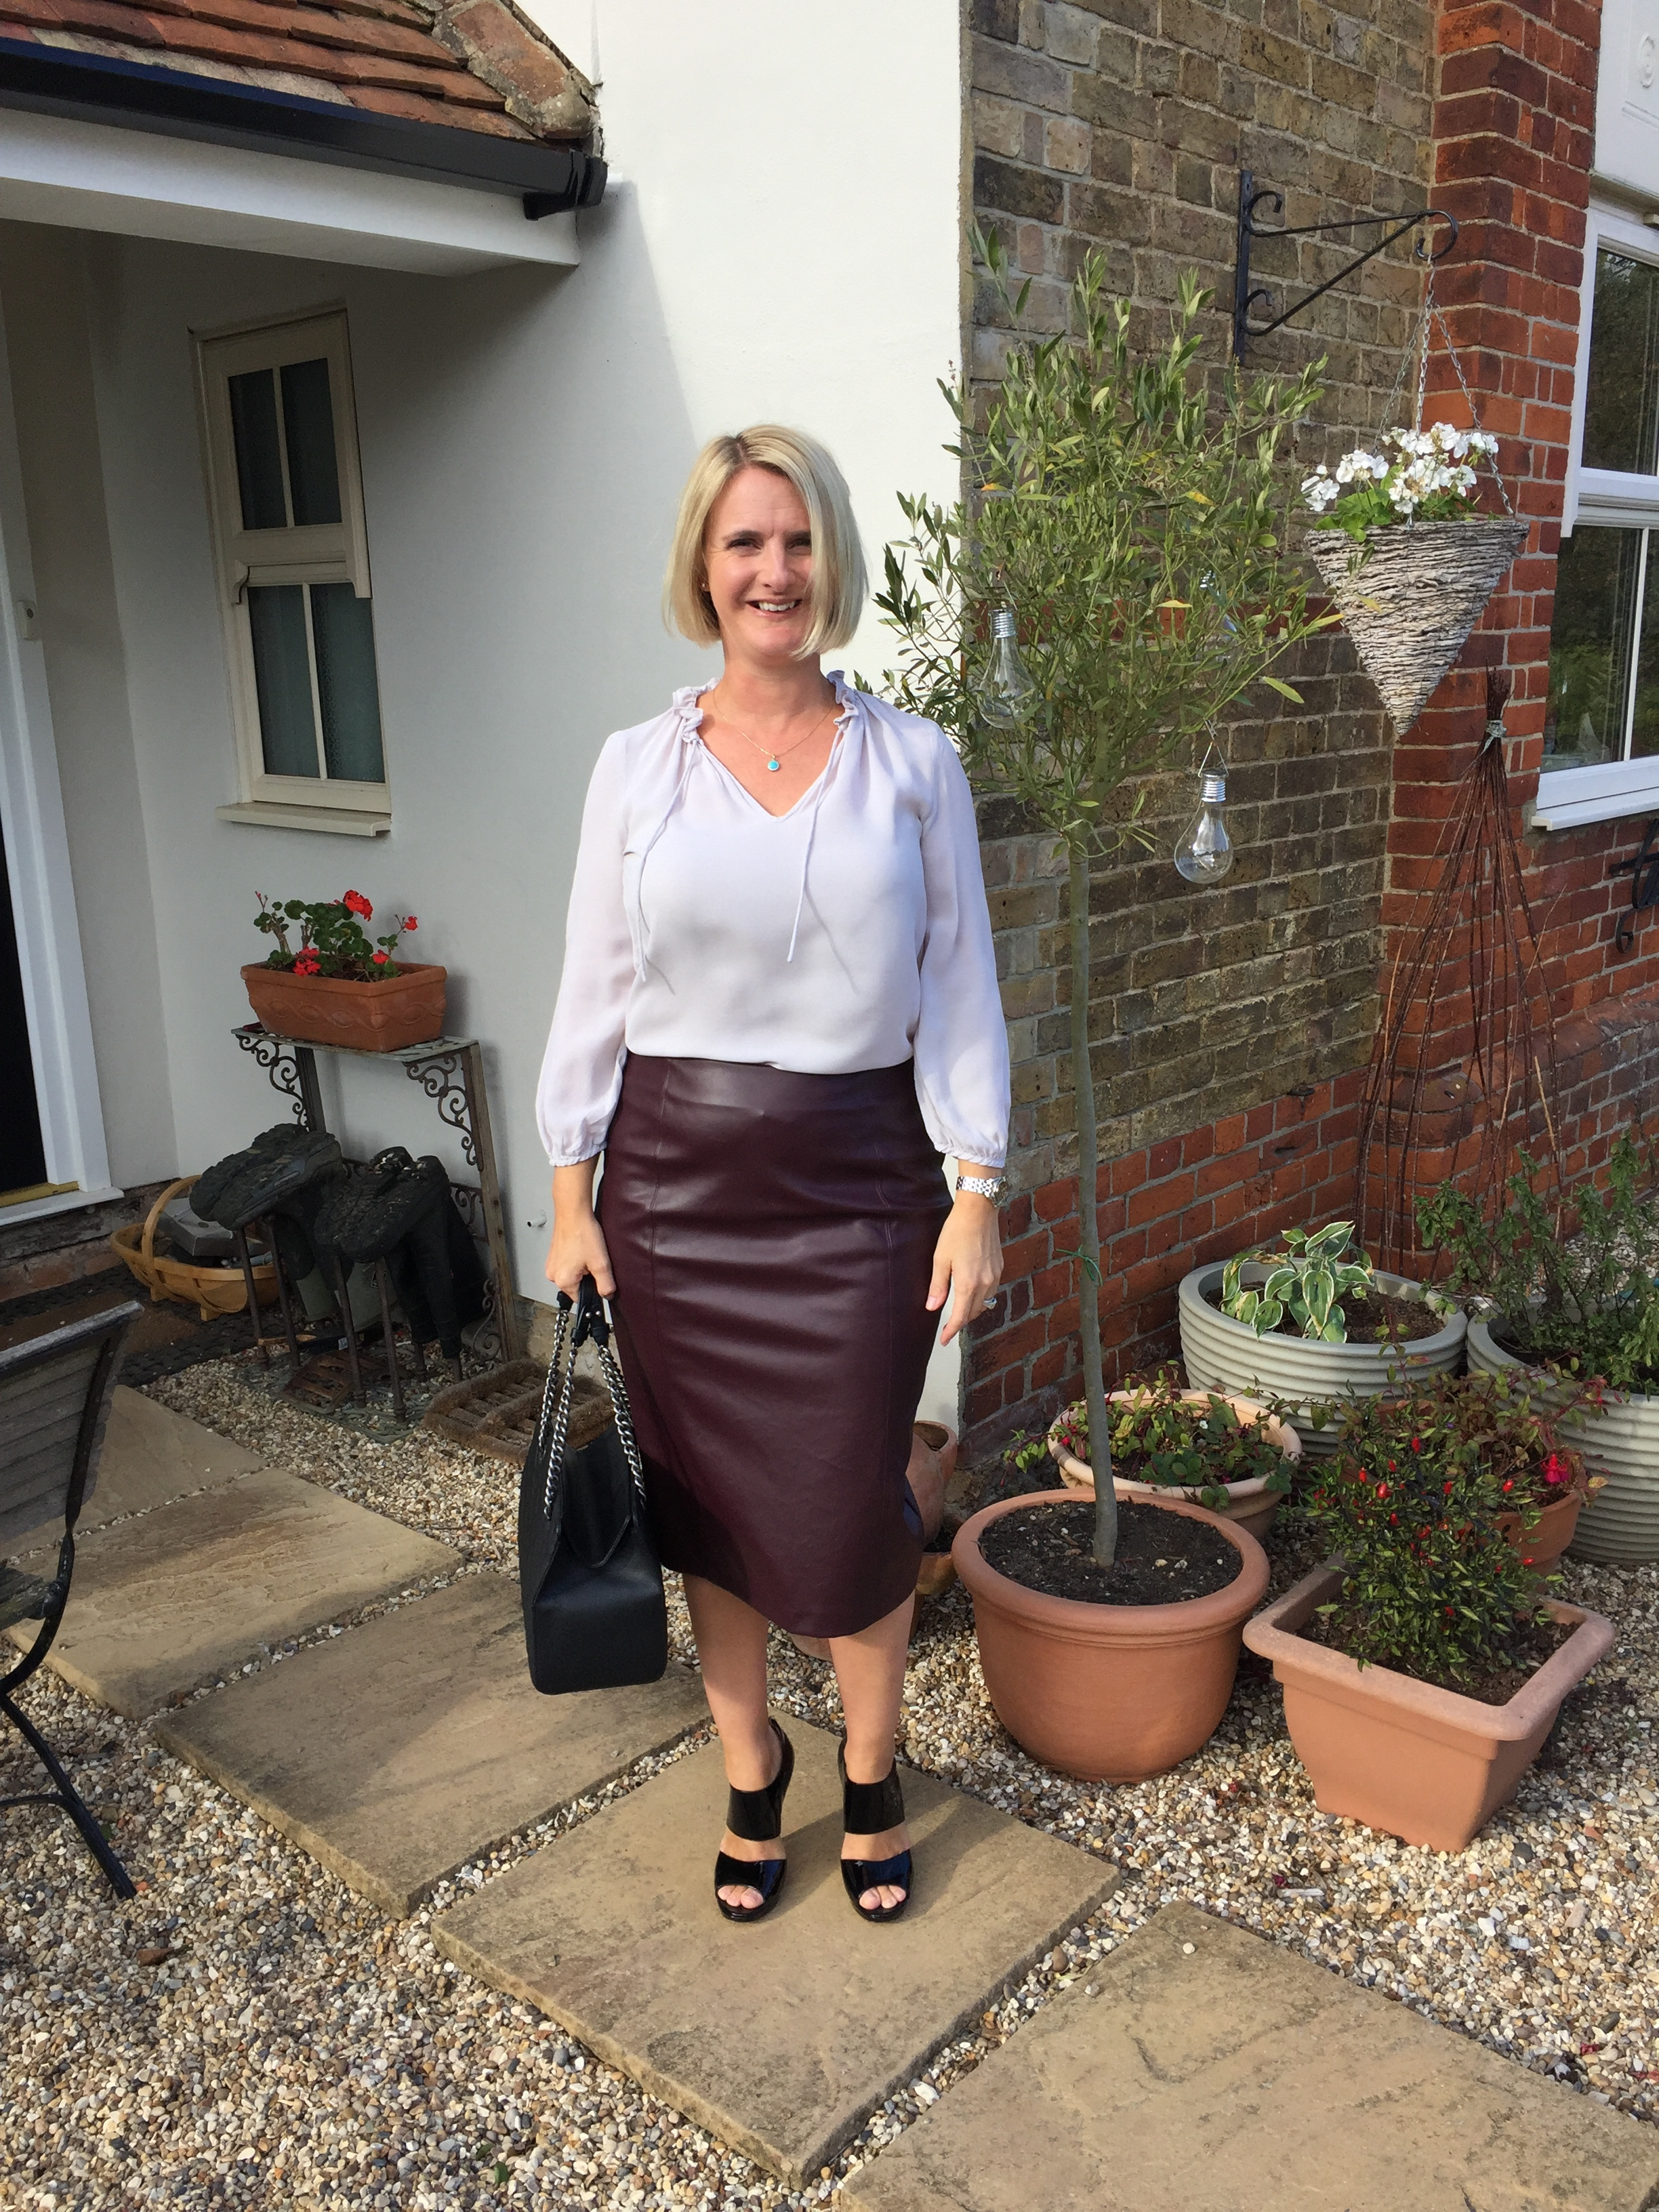 This skirt works so well for me, I think it looks great but more importantly it feels great as its stretchy which allows me to have poo room, a vital requirement when going out for dinner and then sitting for hours after.